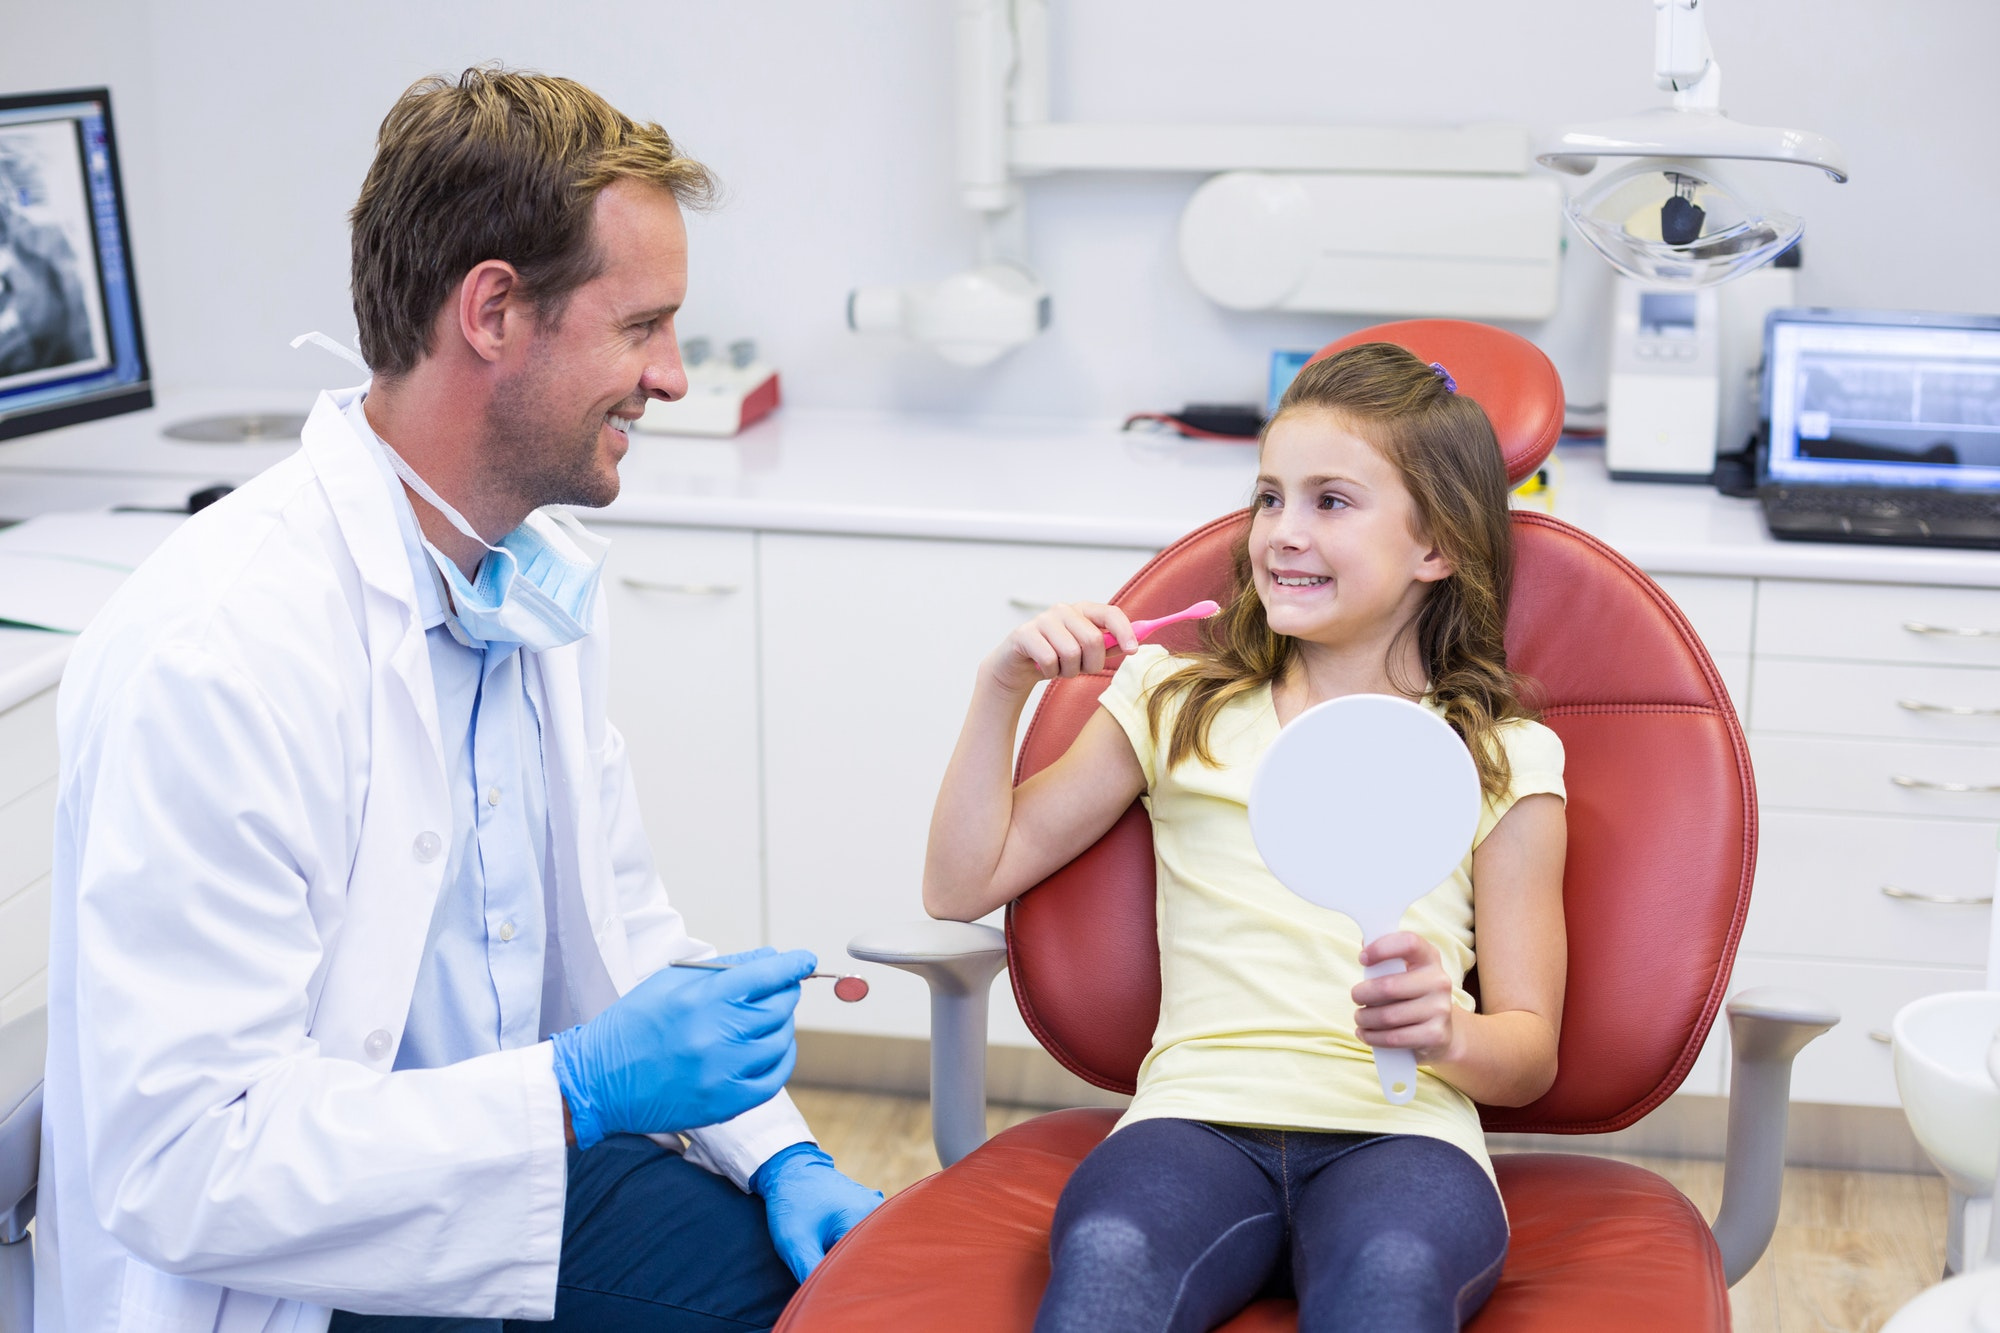 Young patient interacting with dentist in dental clinic